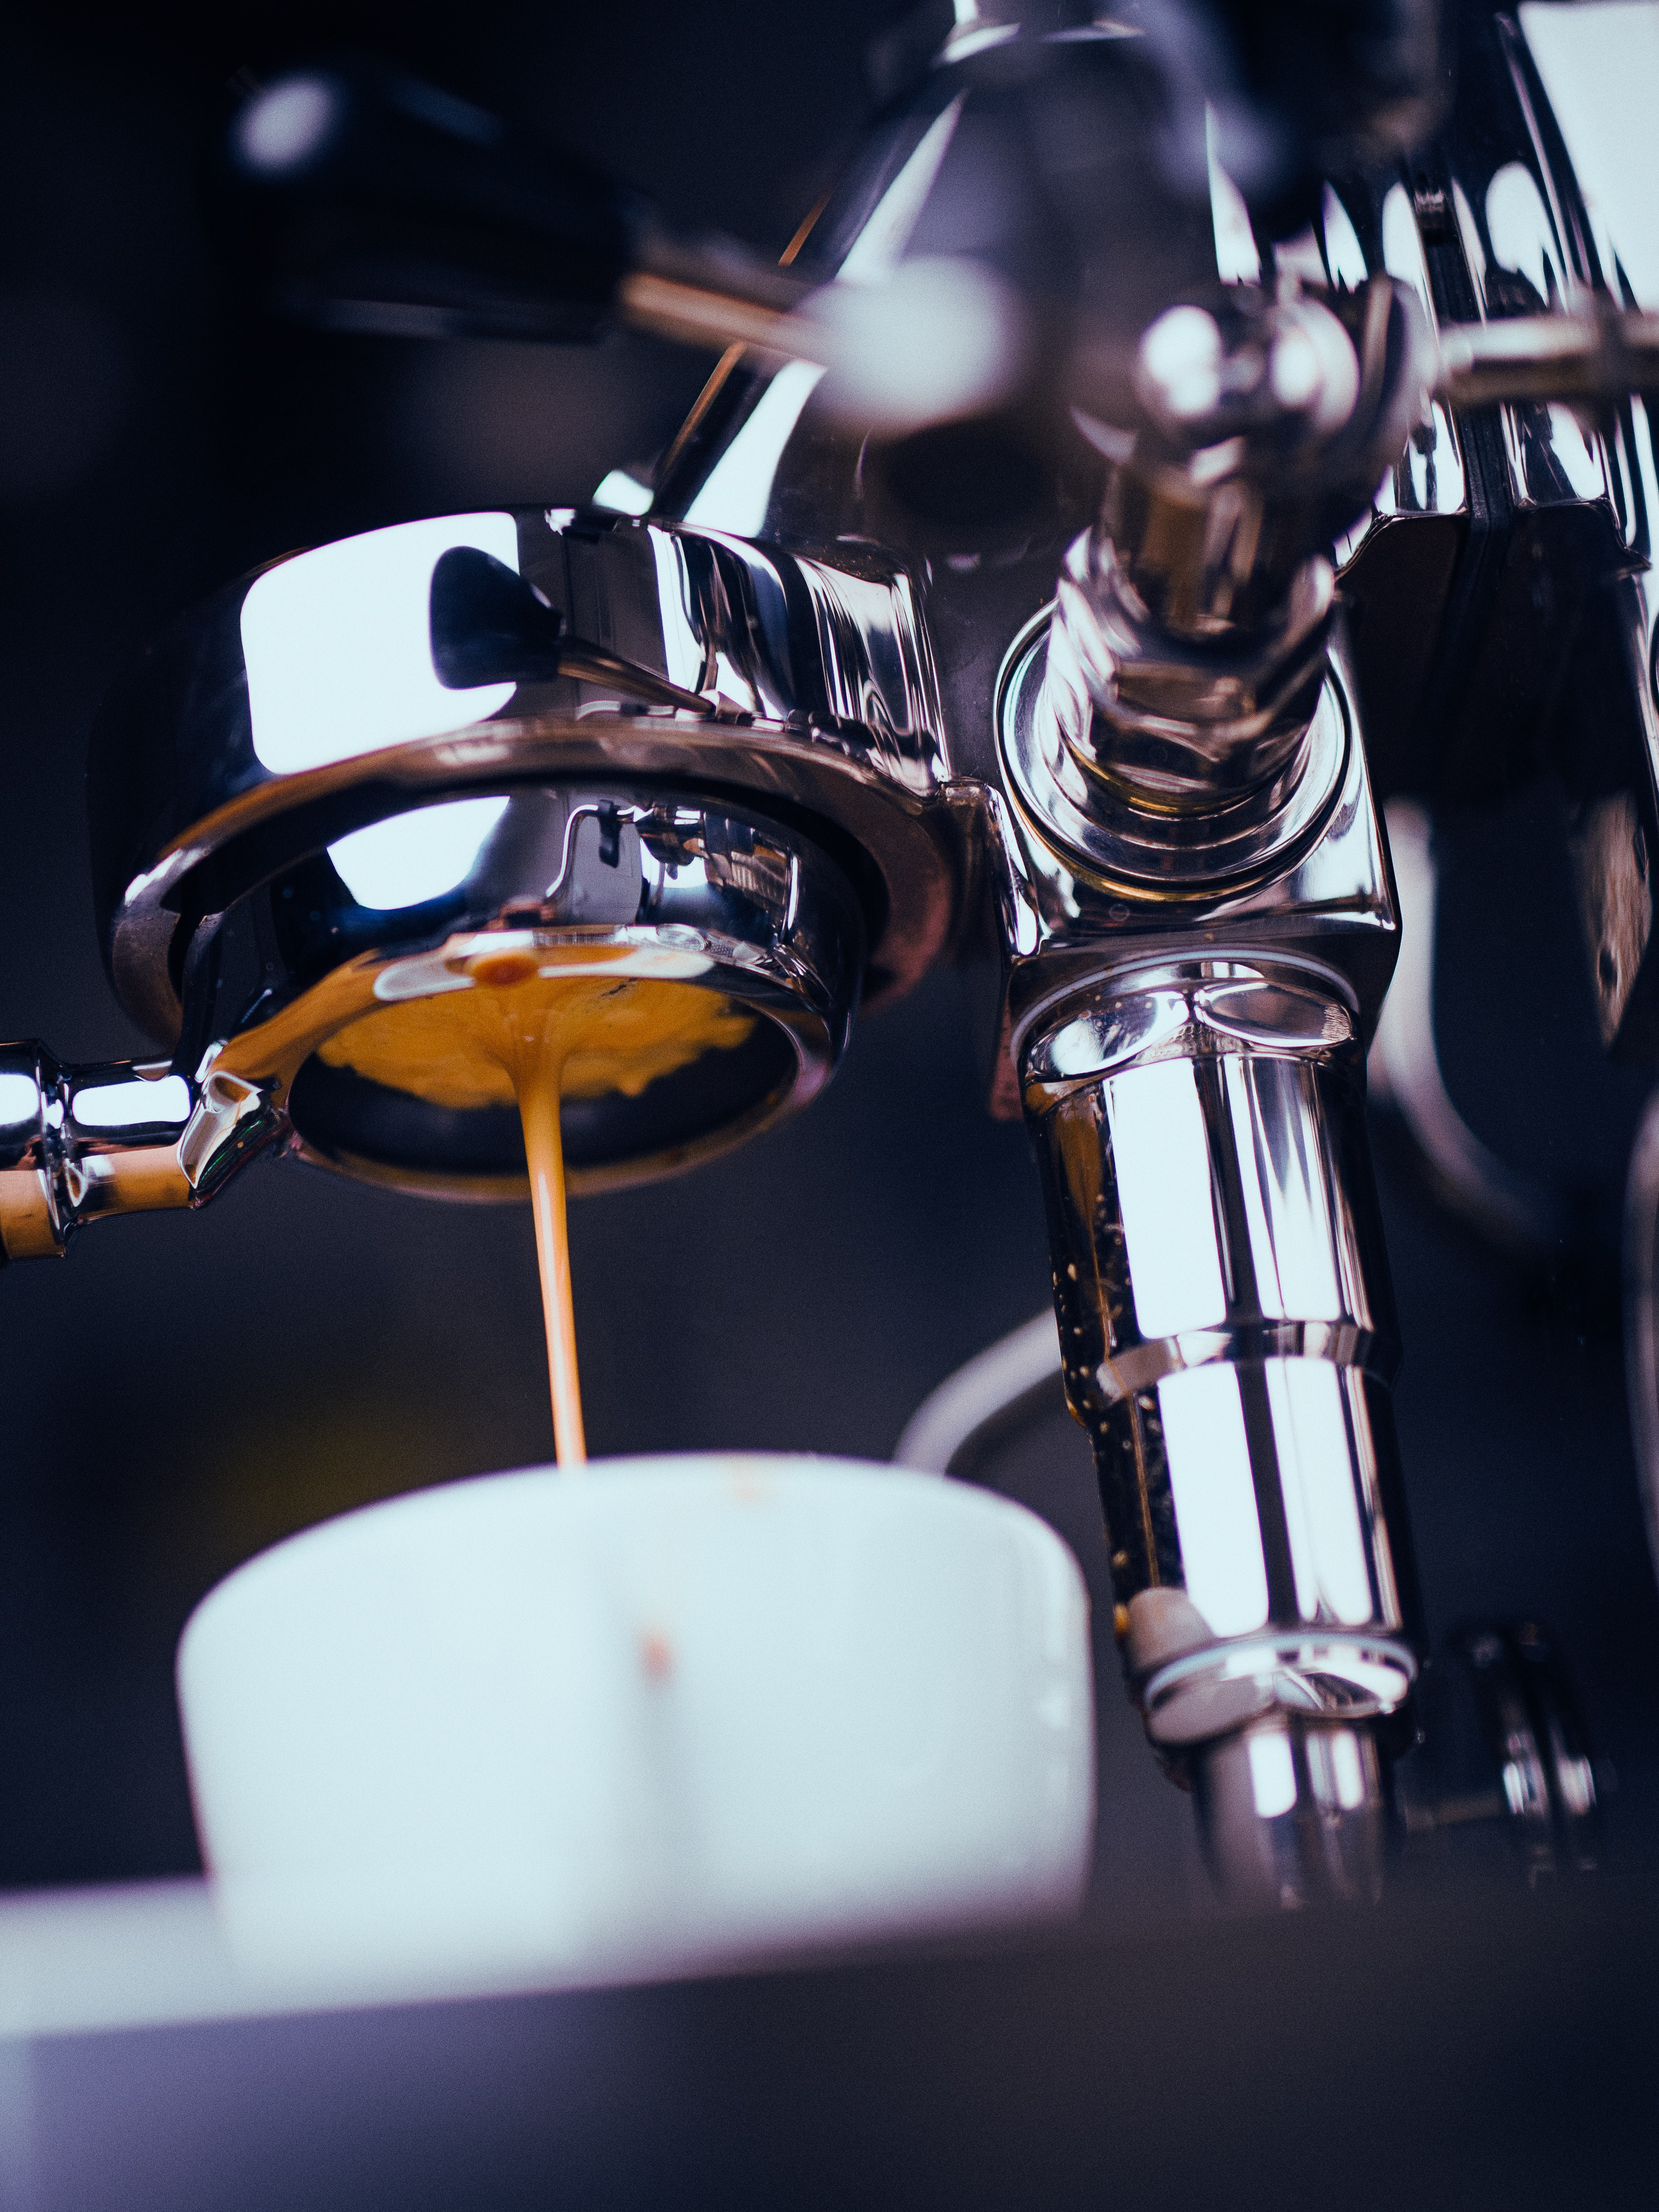 stainless steel espresso machine pouring on cup